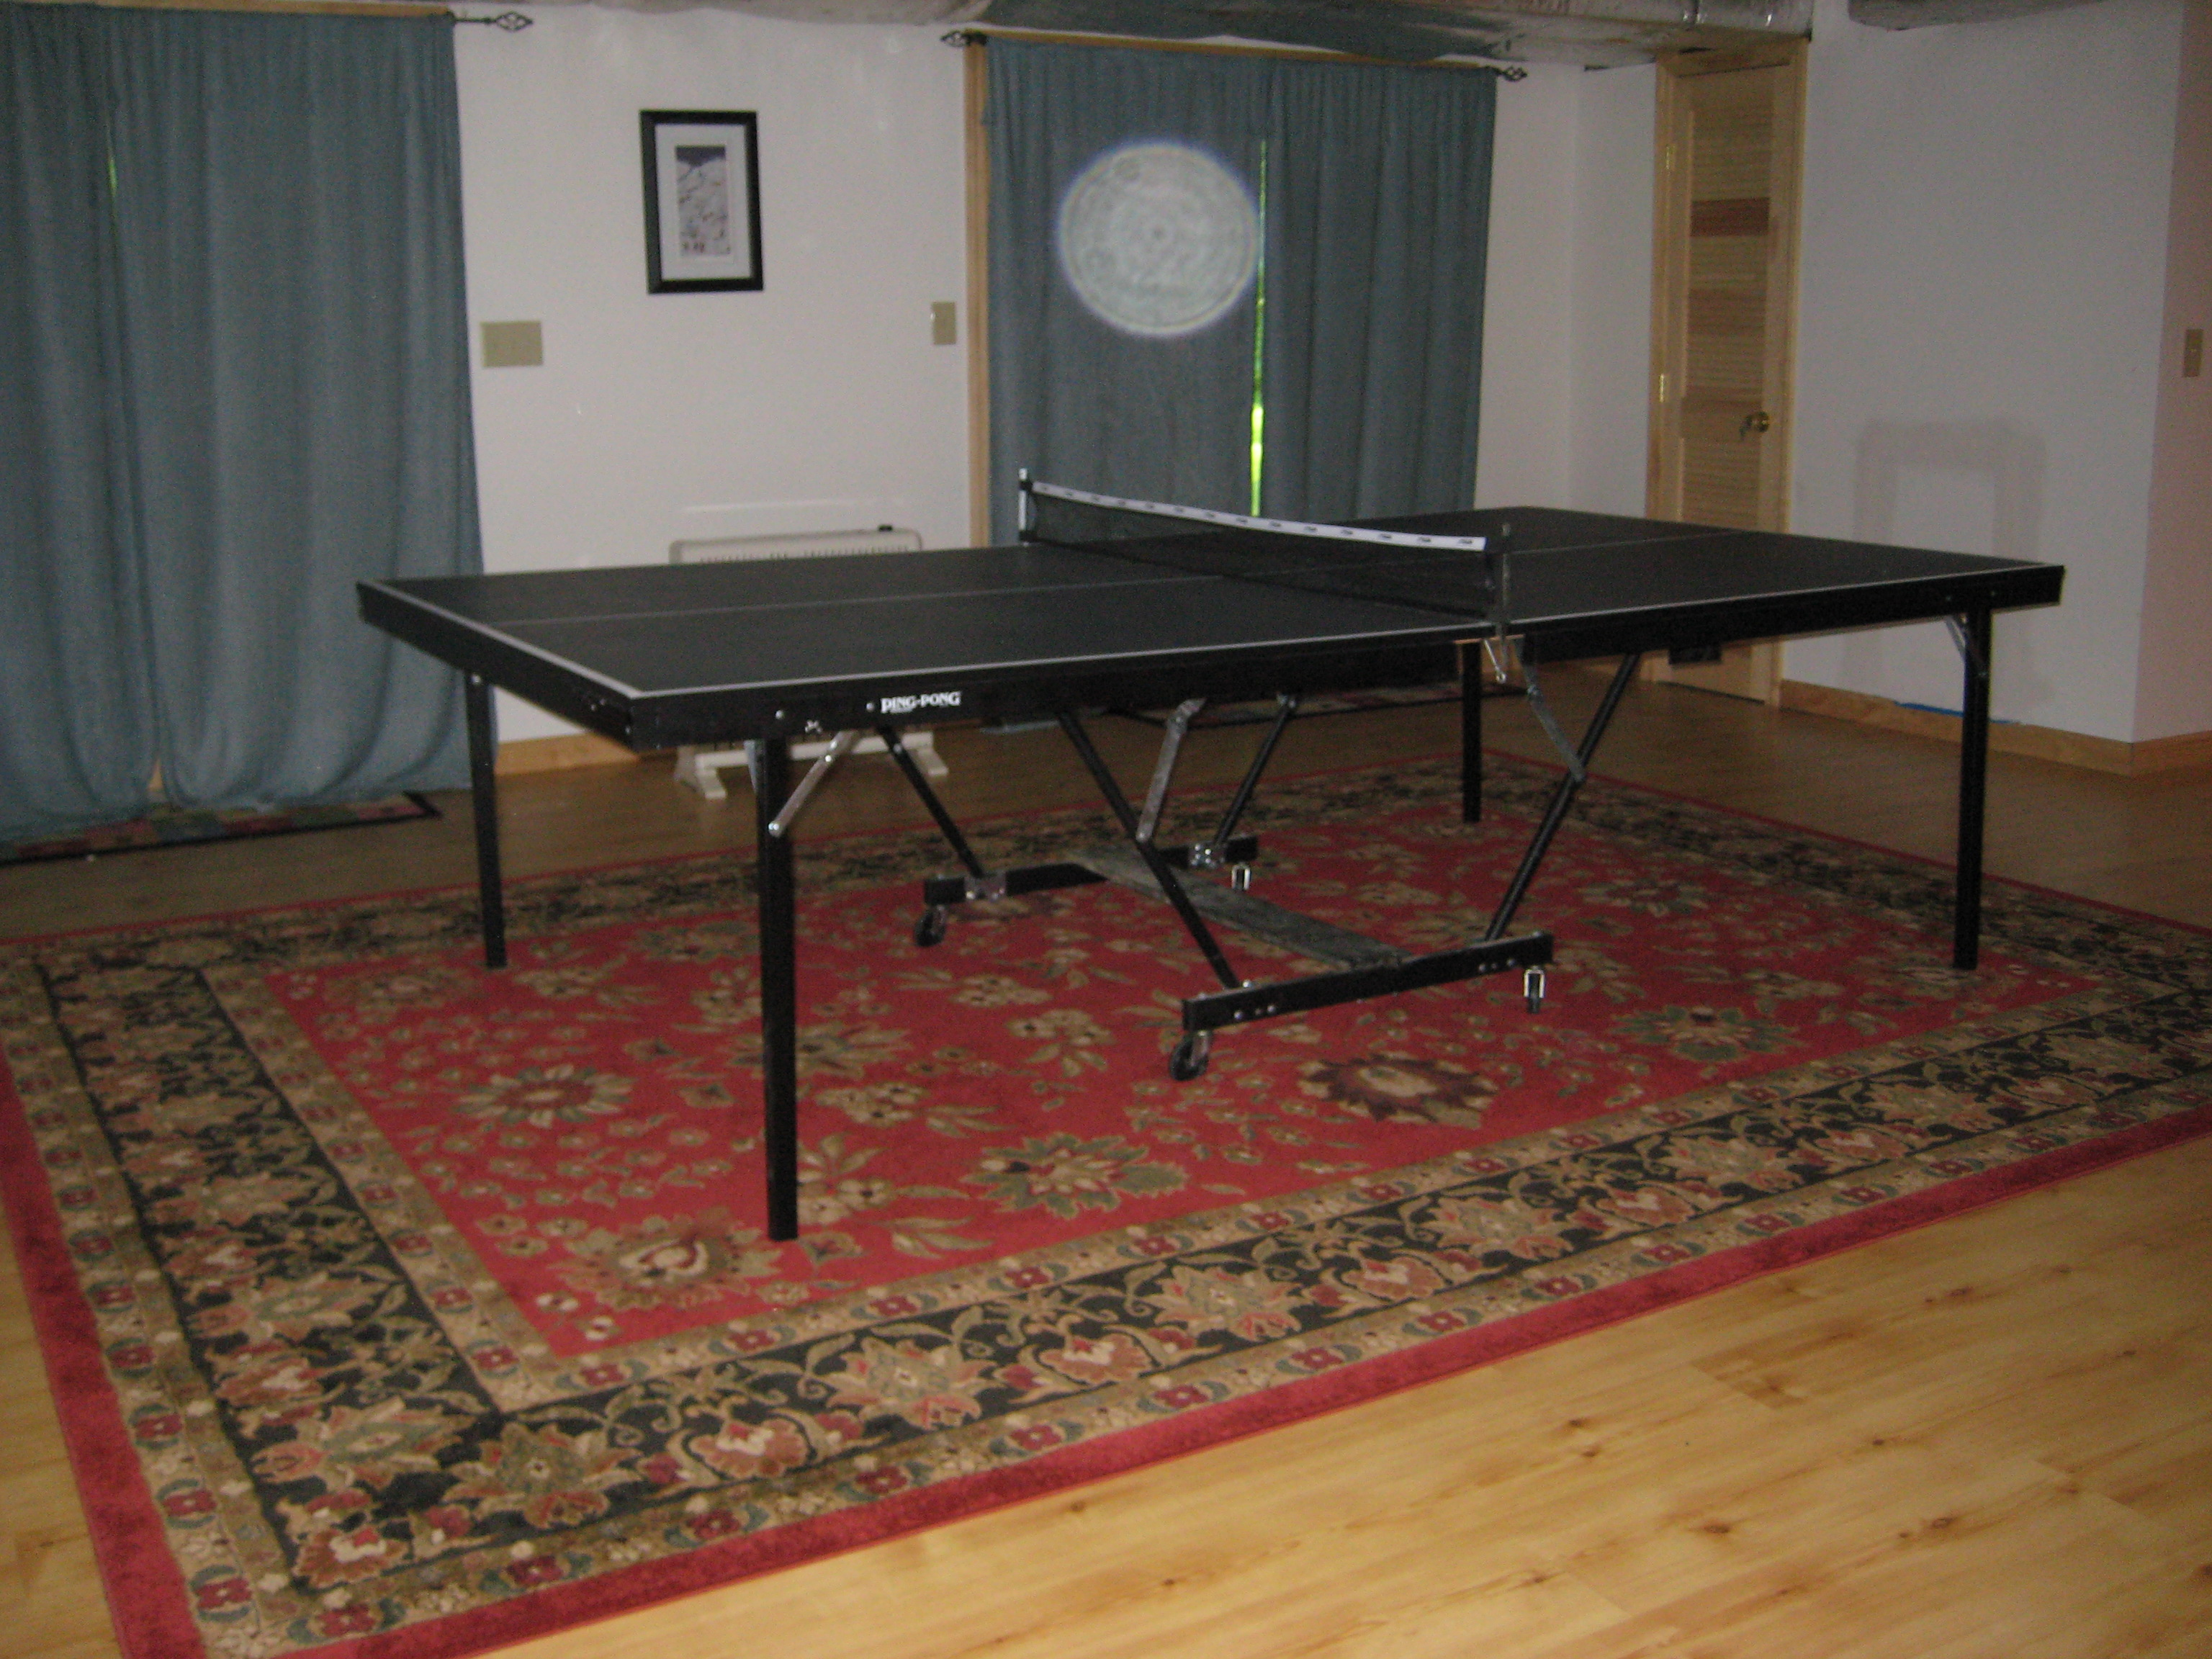 LOWER LEVEL PIING PONG TABLE